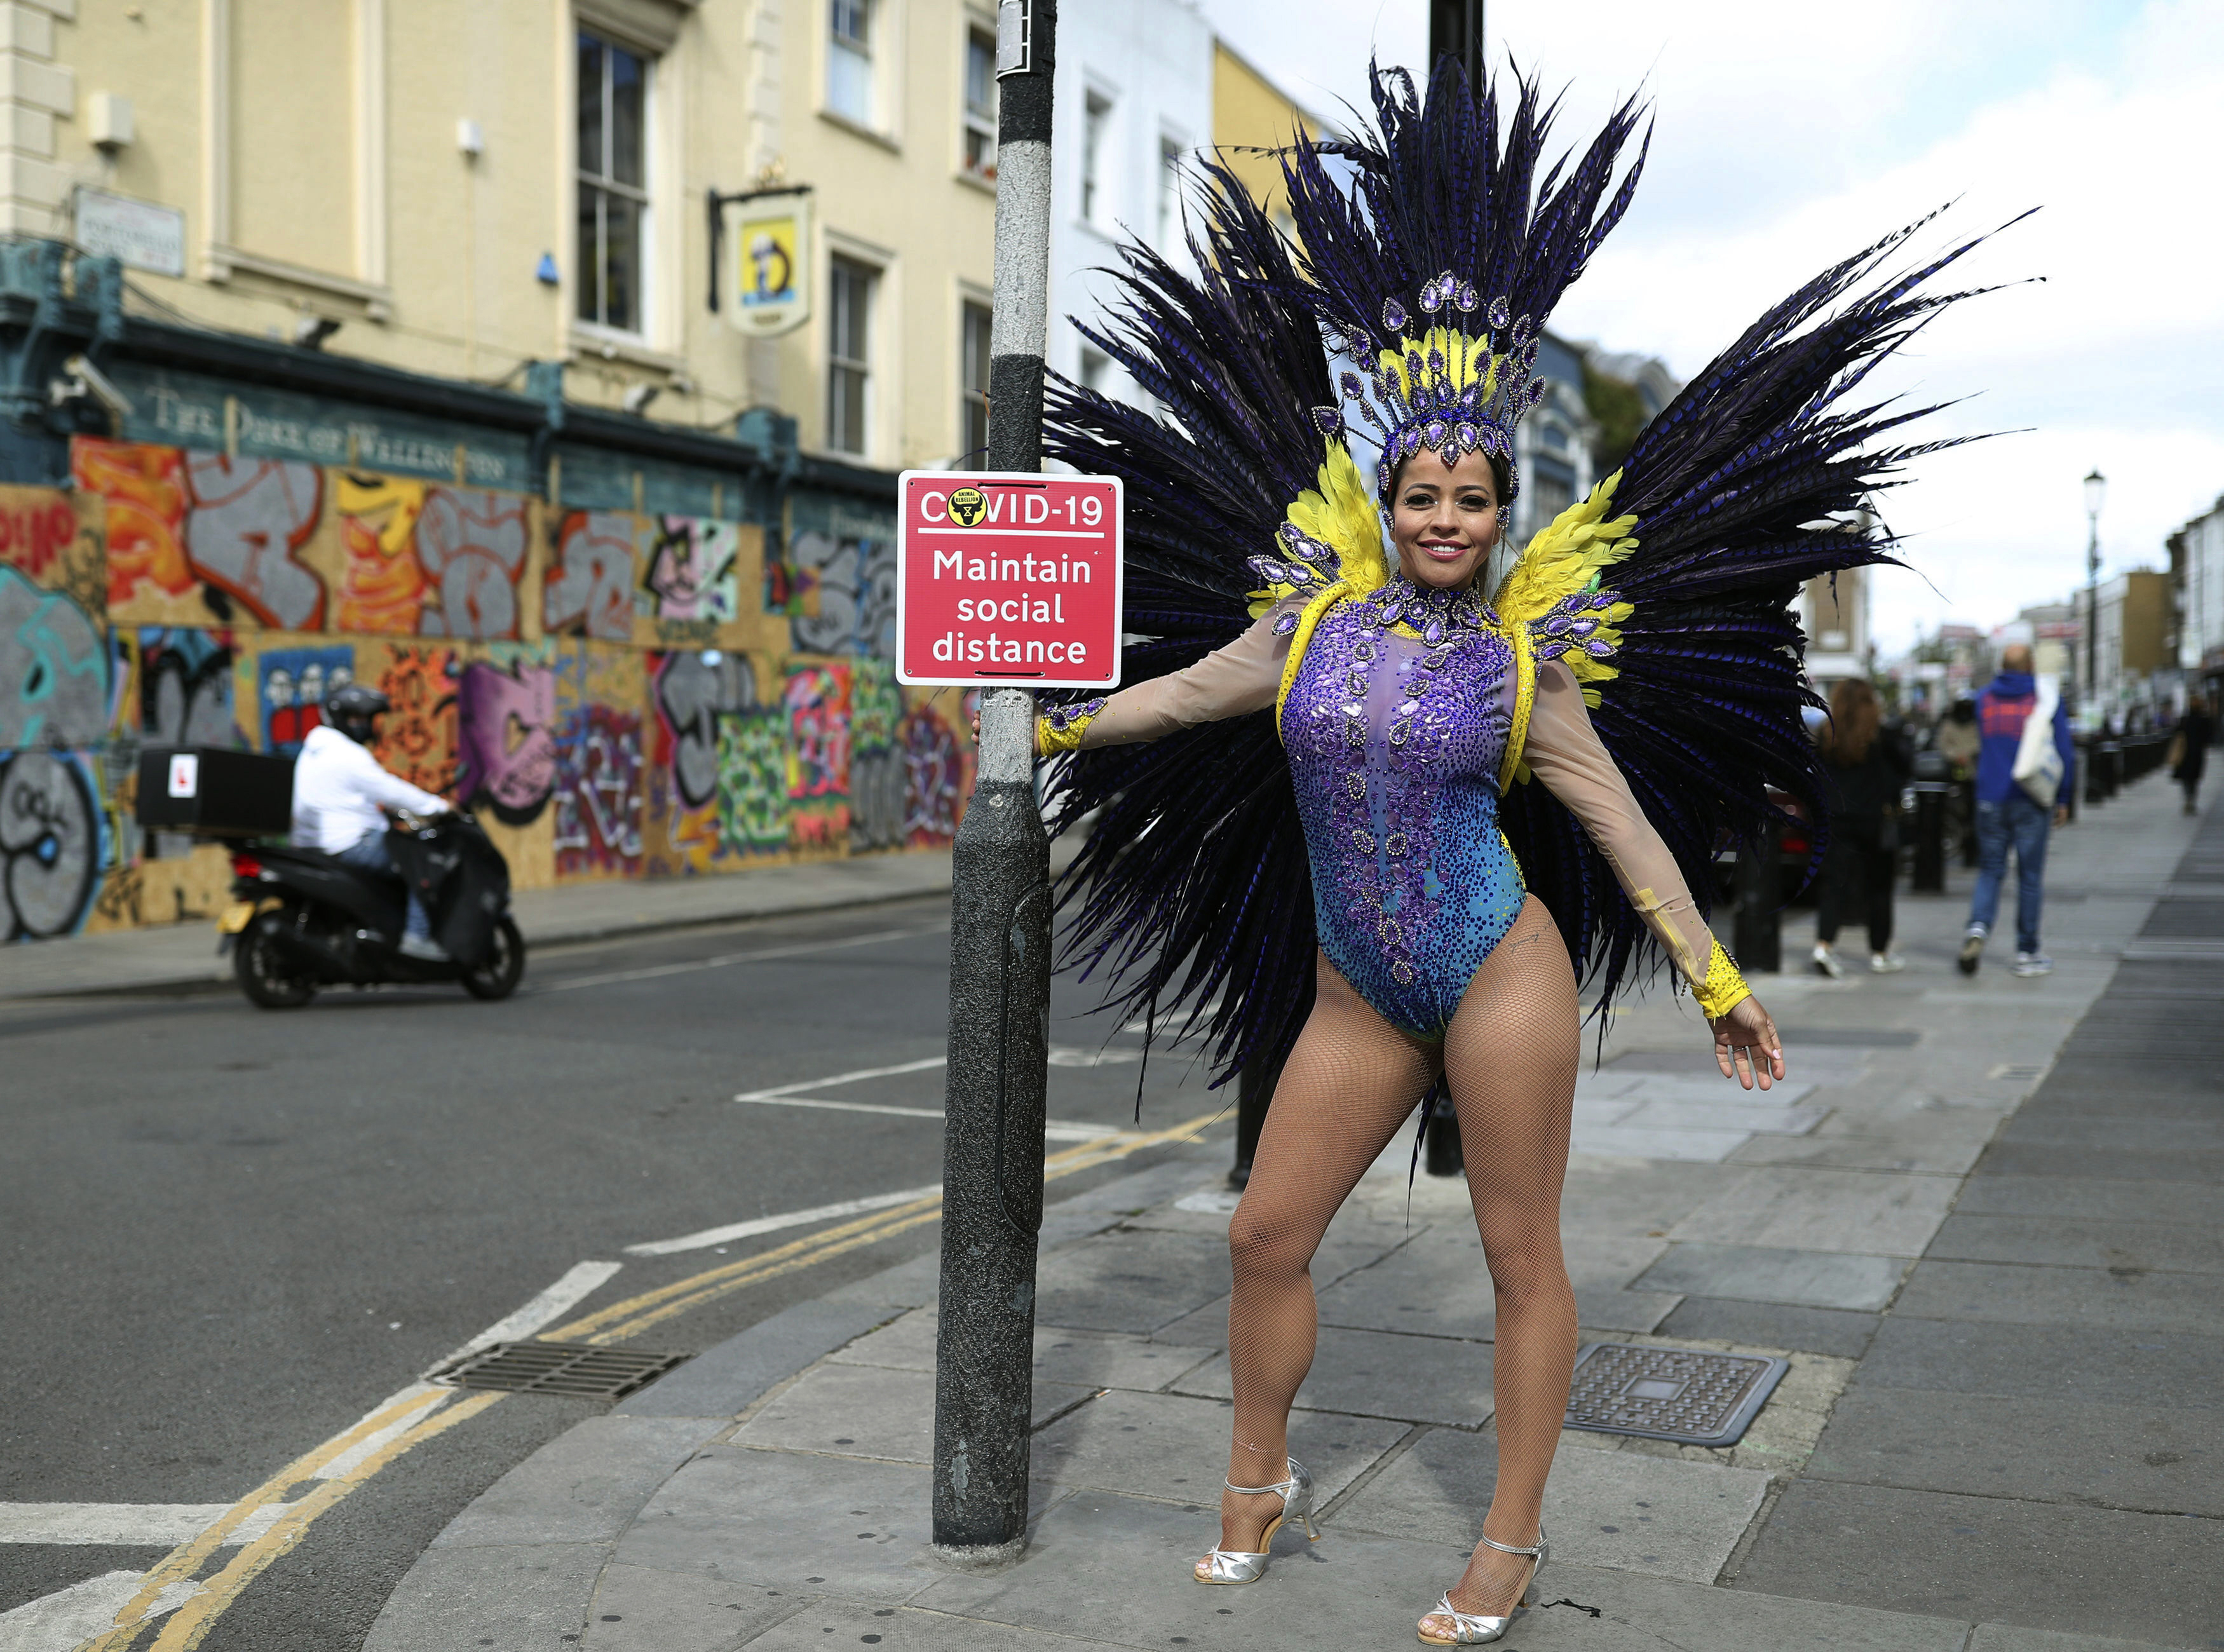 Pilates instructor Juliana Campos poses in her carnival costume in Notting Hill, London, on what would have been the weekend of the Notting Hill Carnival, after the 2020 carnival was cancelled due to the coronavirus pandemic, Sunday, Aug. 30, 2020. (Yui Mok/PA via AP)